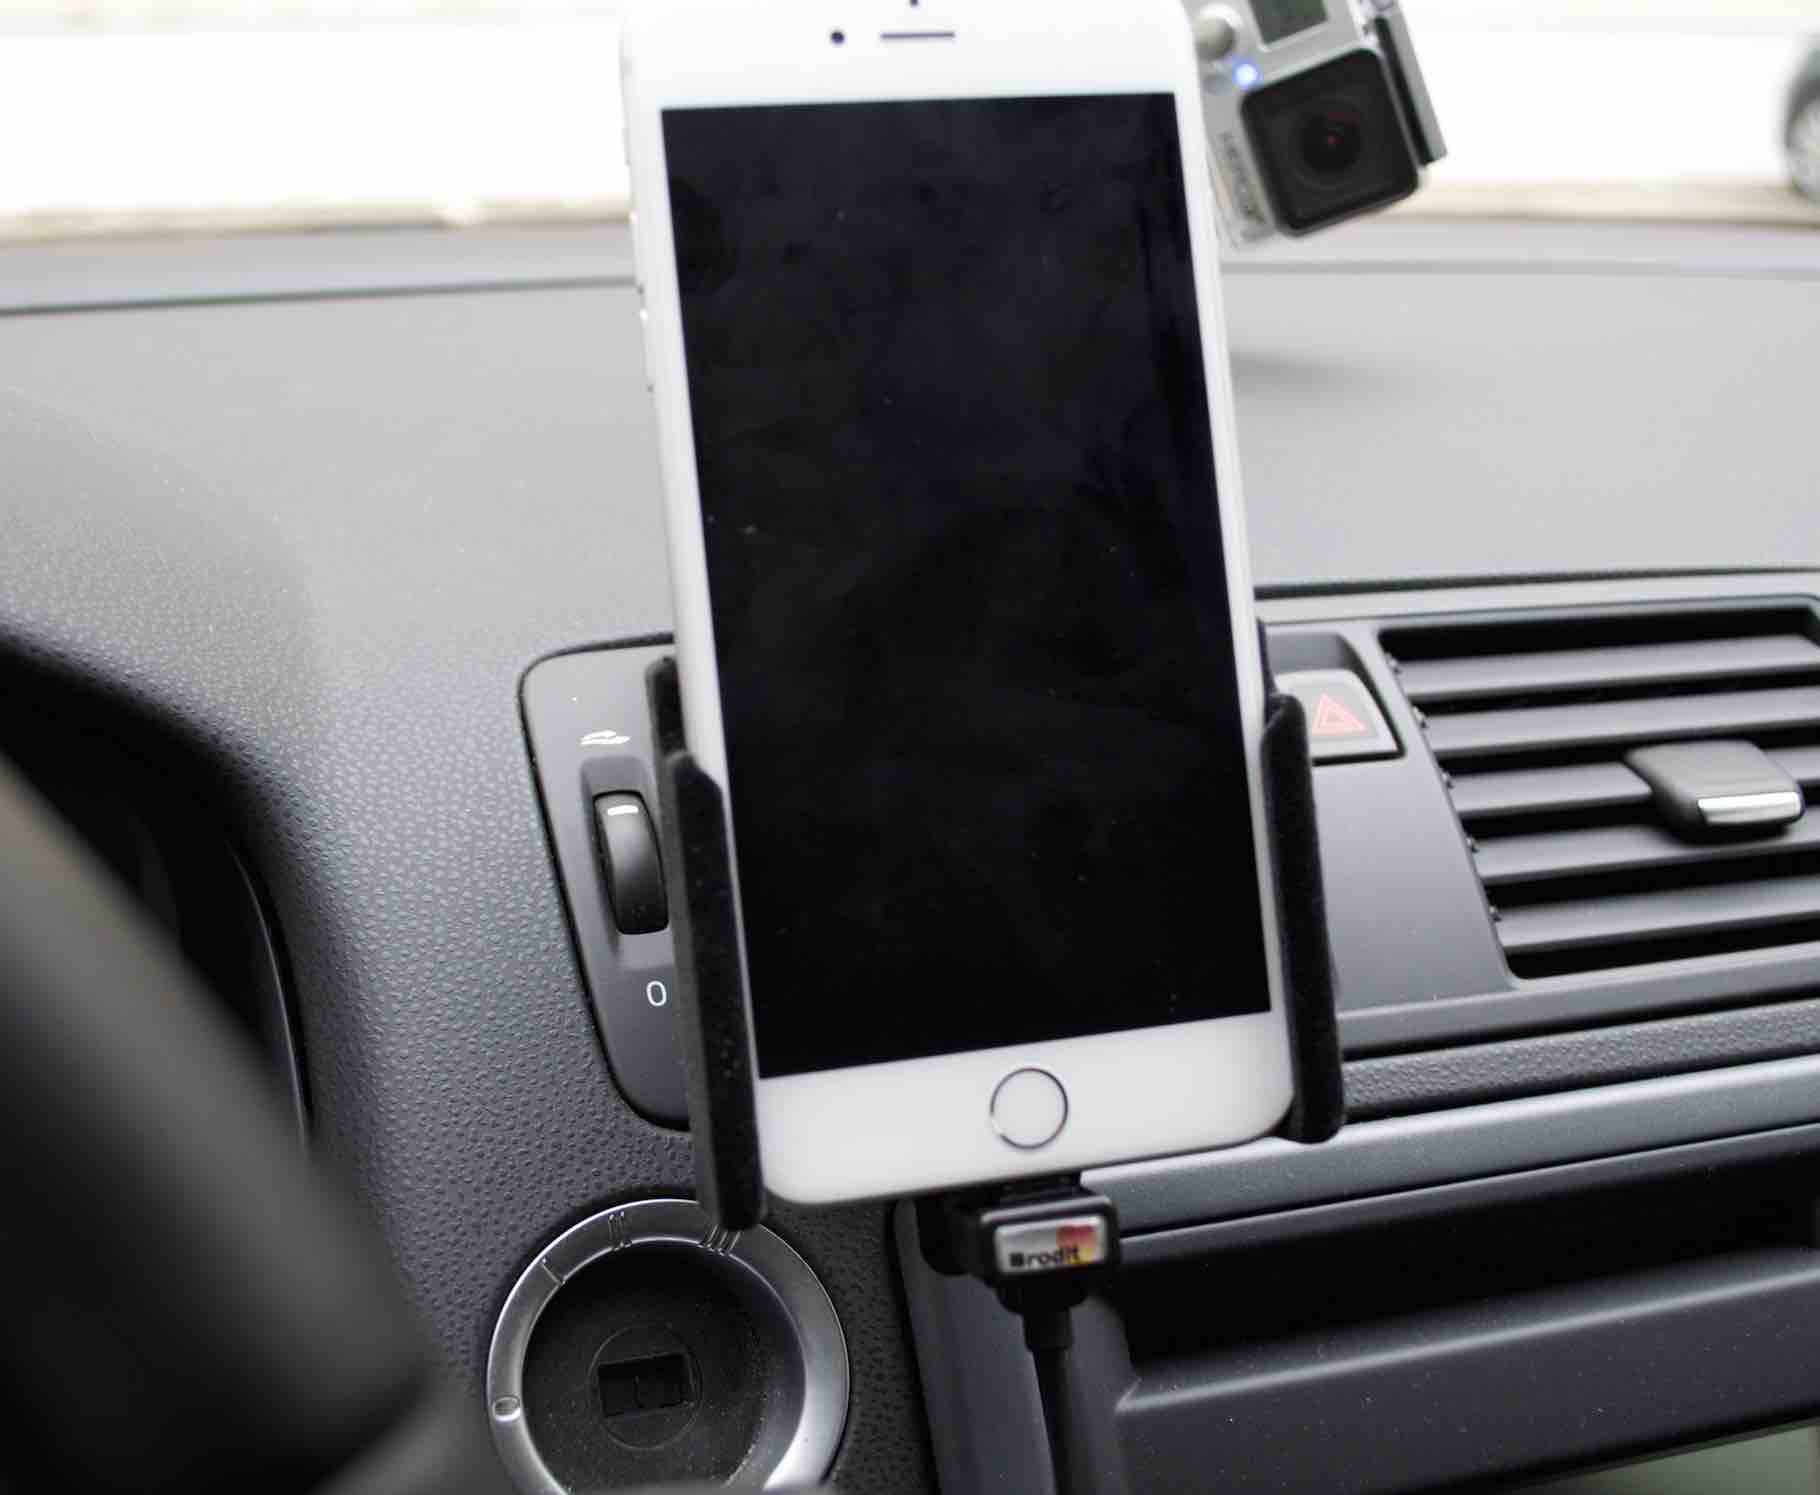 Supporto auto per iphone 6 plus di brodit la recensione - Porta iphone auto ...